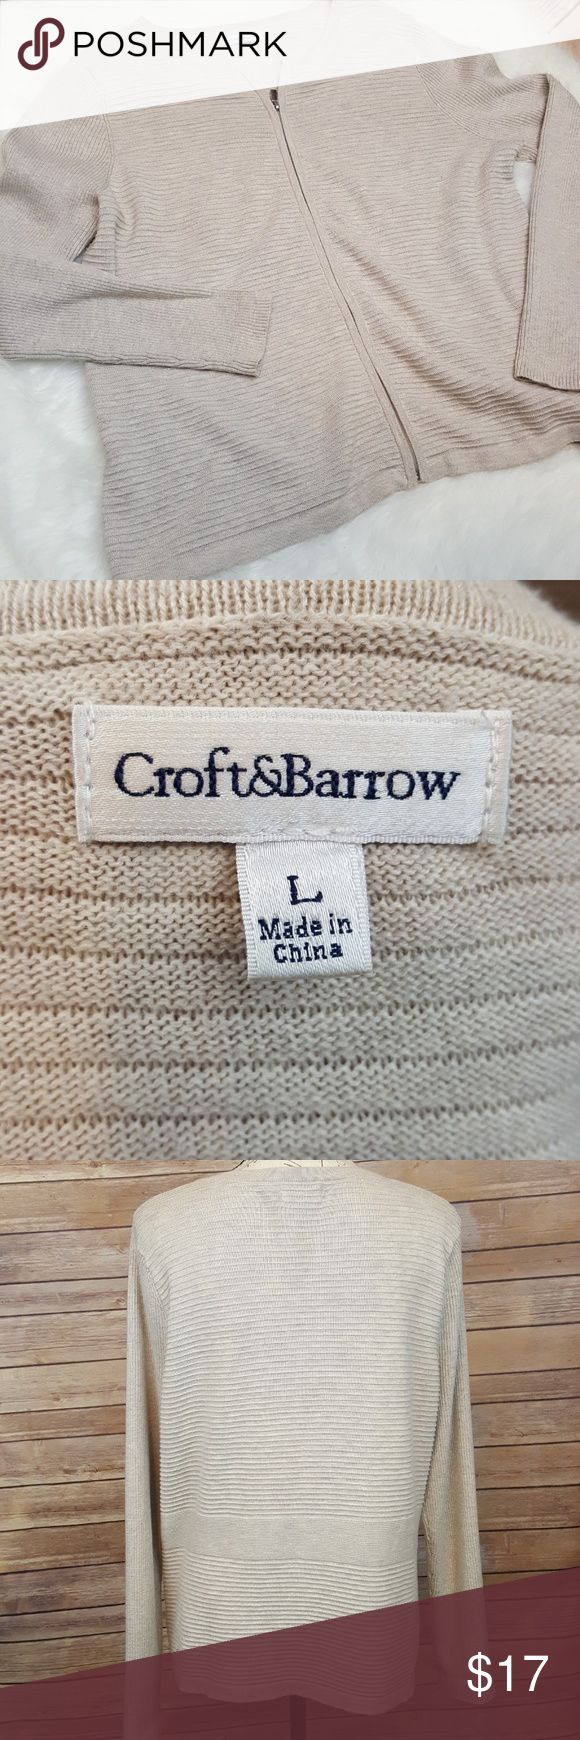 Croft and Barrow Women Large Cream Beige Cardigan EUC Thin knit zip up striped cardigan from Croft & Barrow in a size large.  Color is a mix of cream and beige, a good neutral item for any closet. Croft & Barrow Sweaters Cardigans